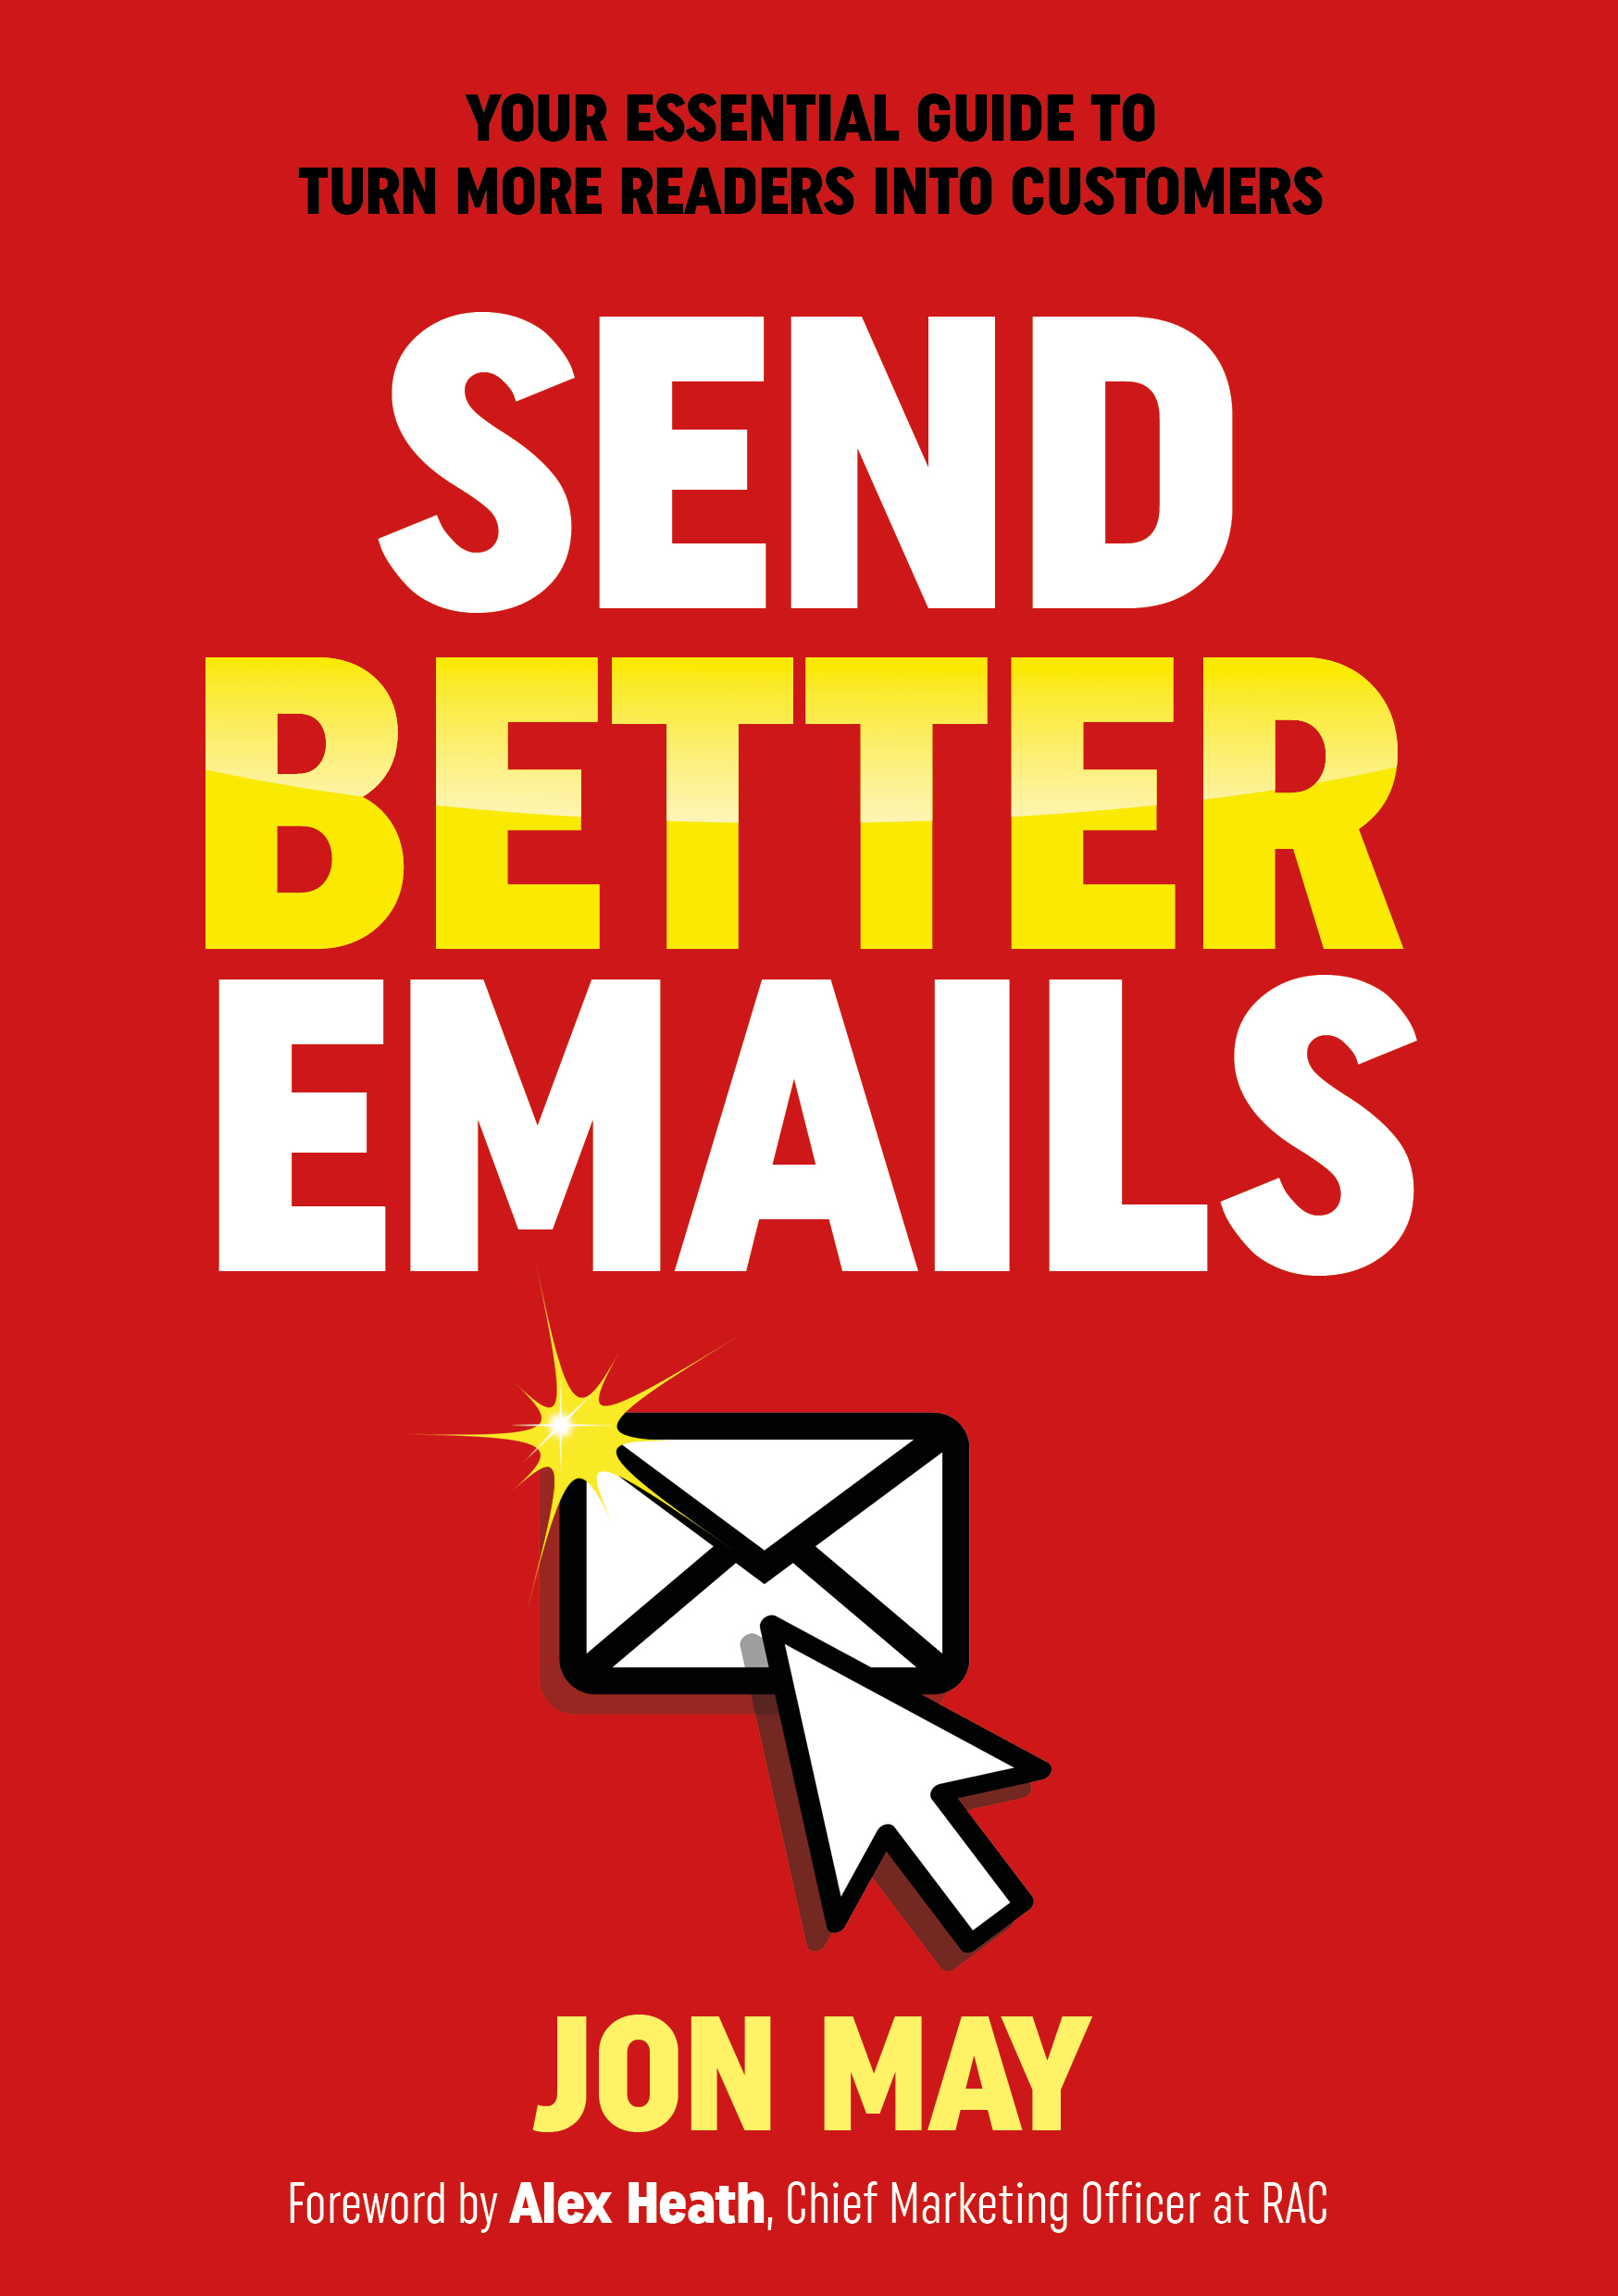 Send Better Emails - Jon May